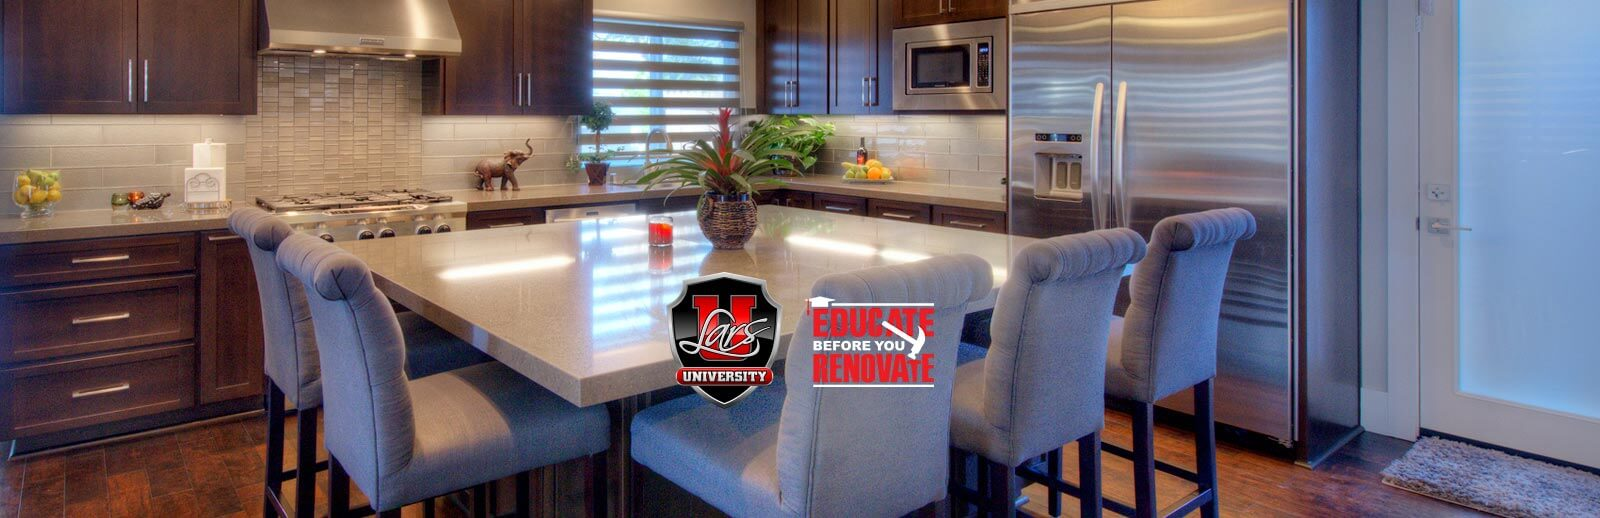 san diego remodeling workshop - Kitchen Designers San Diego